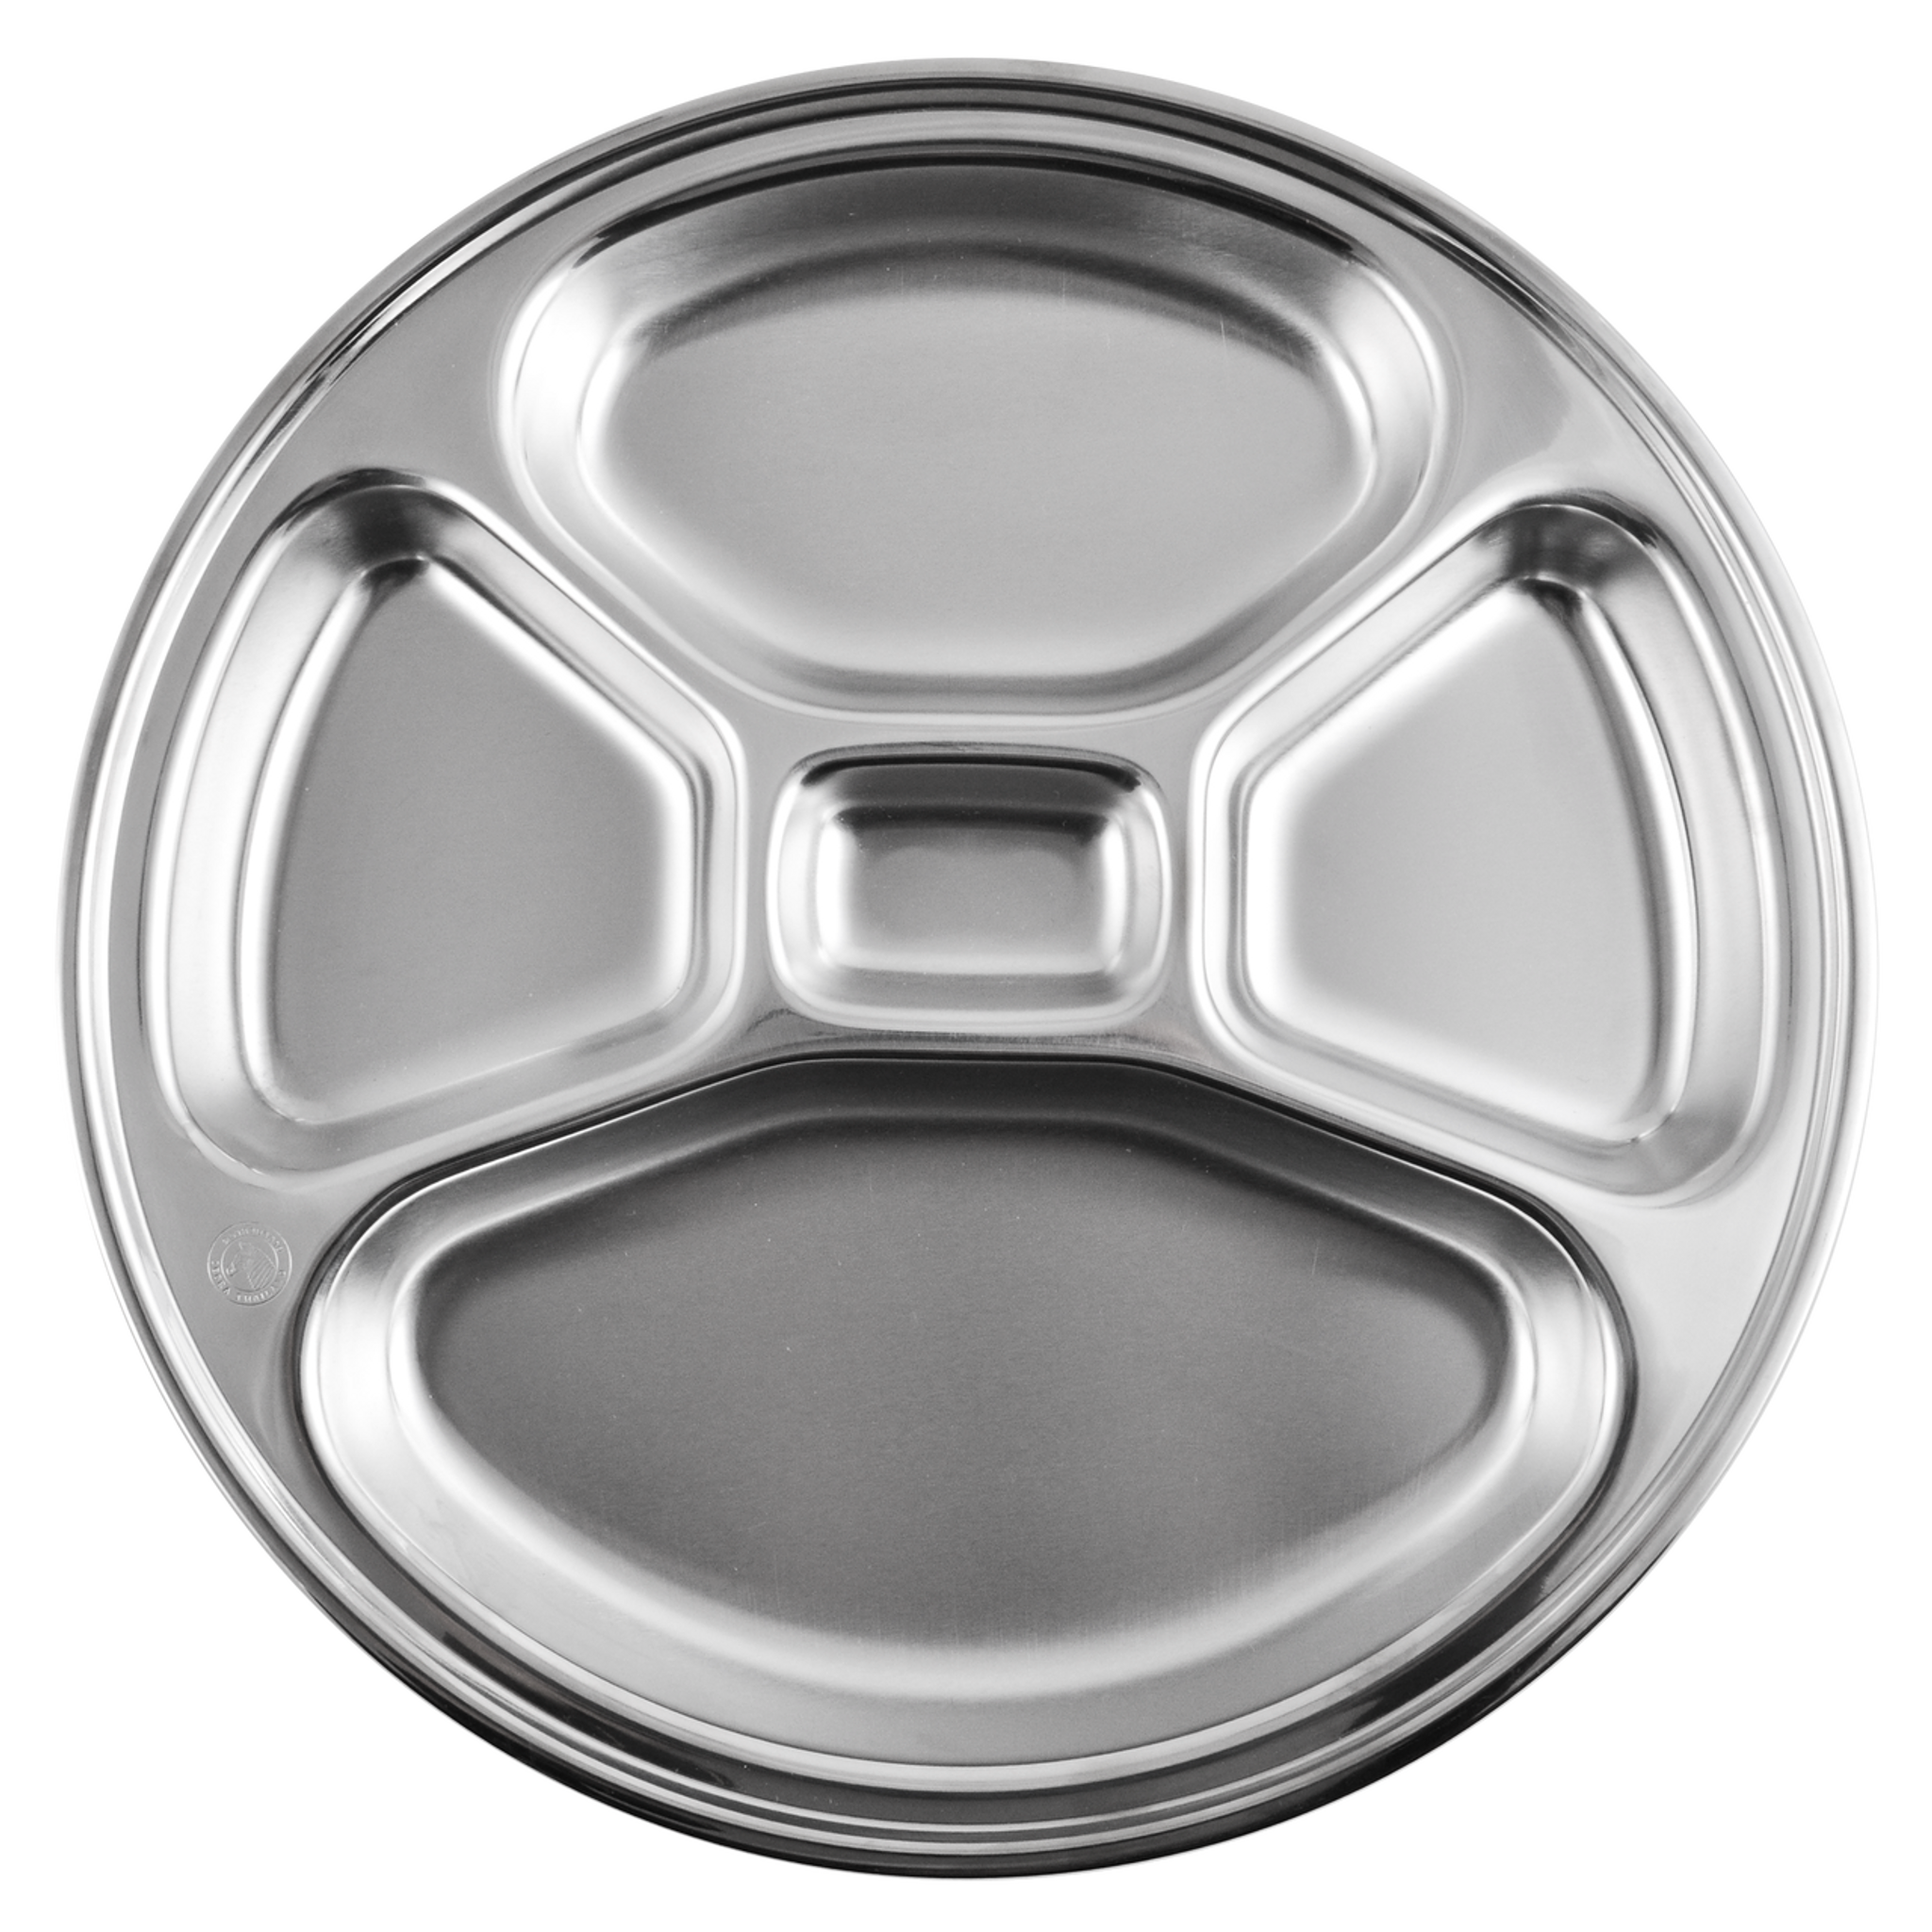 Stainless Steel Food Tray Non Plastic Products